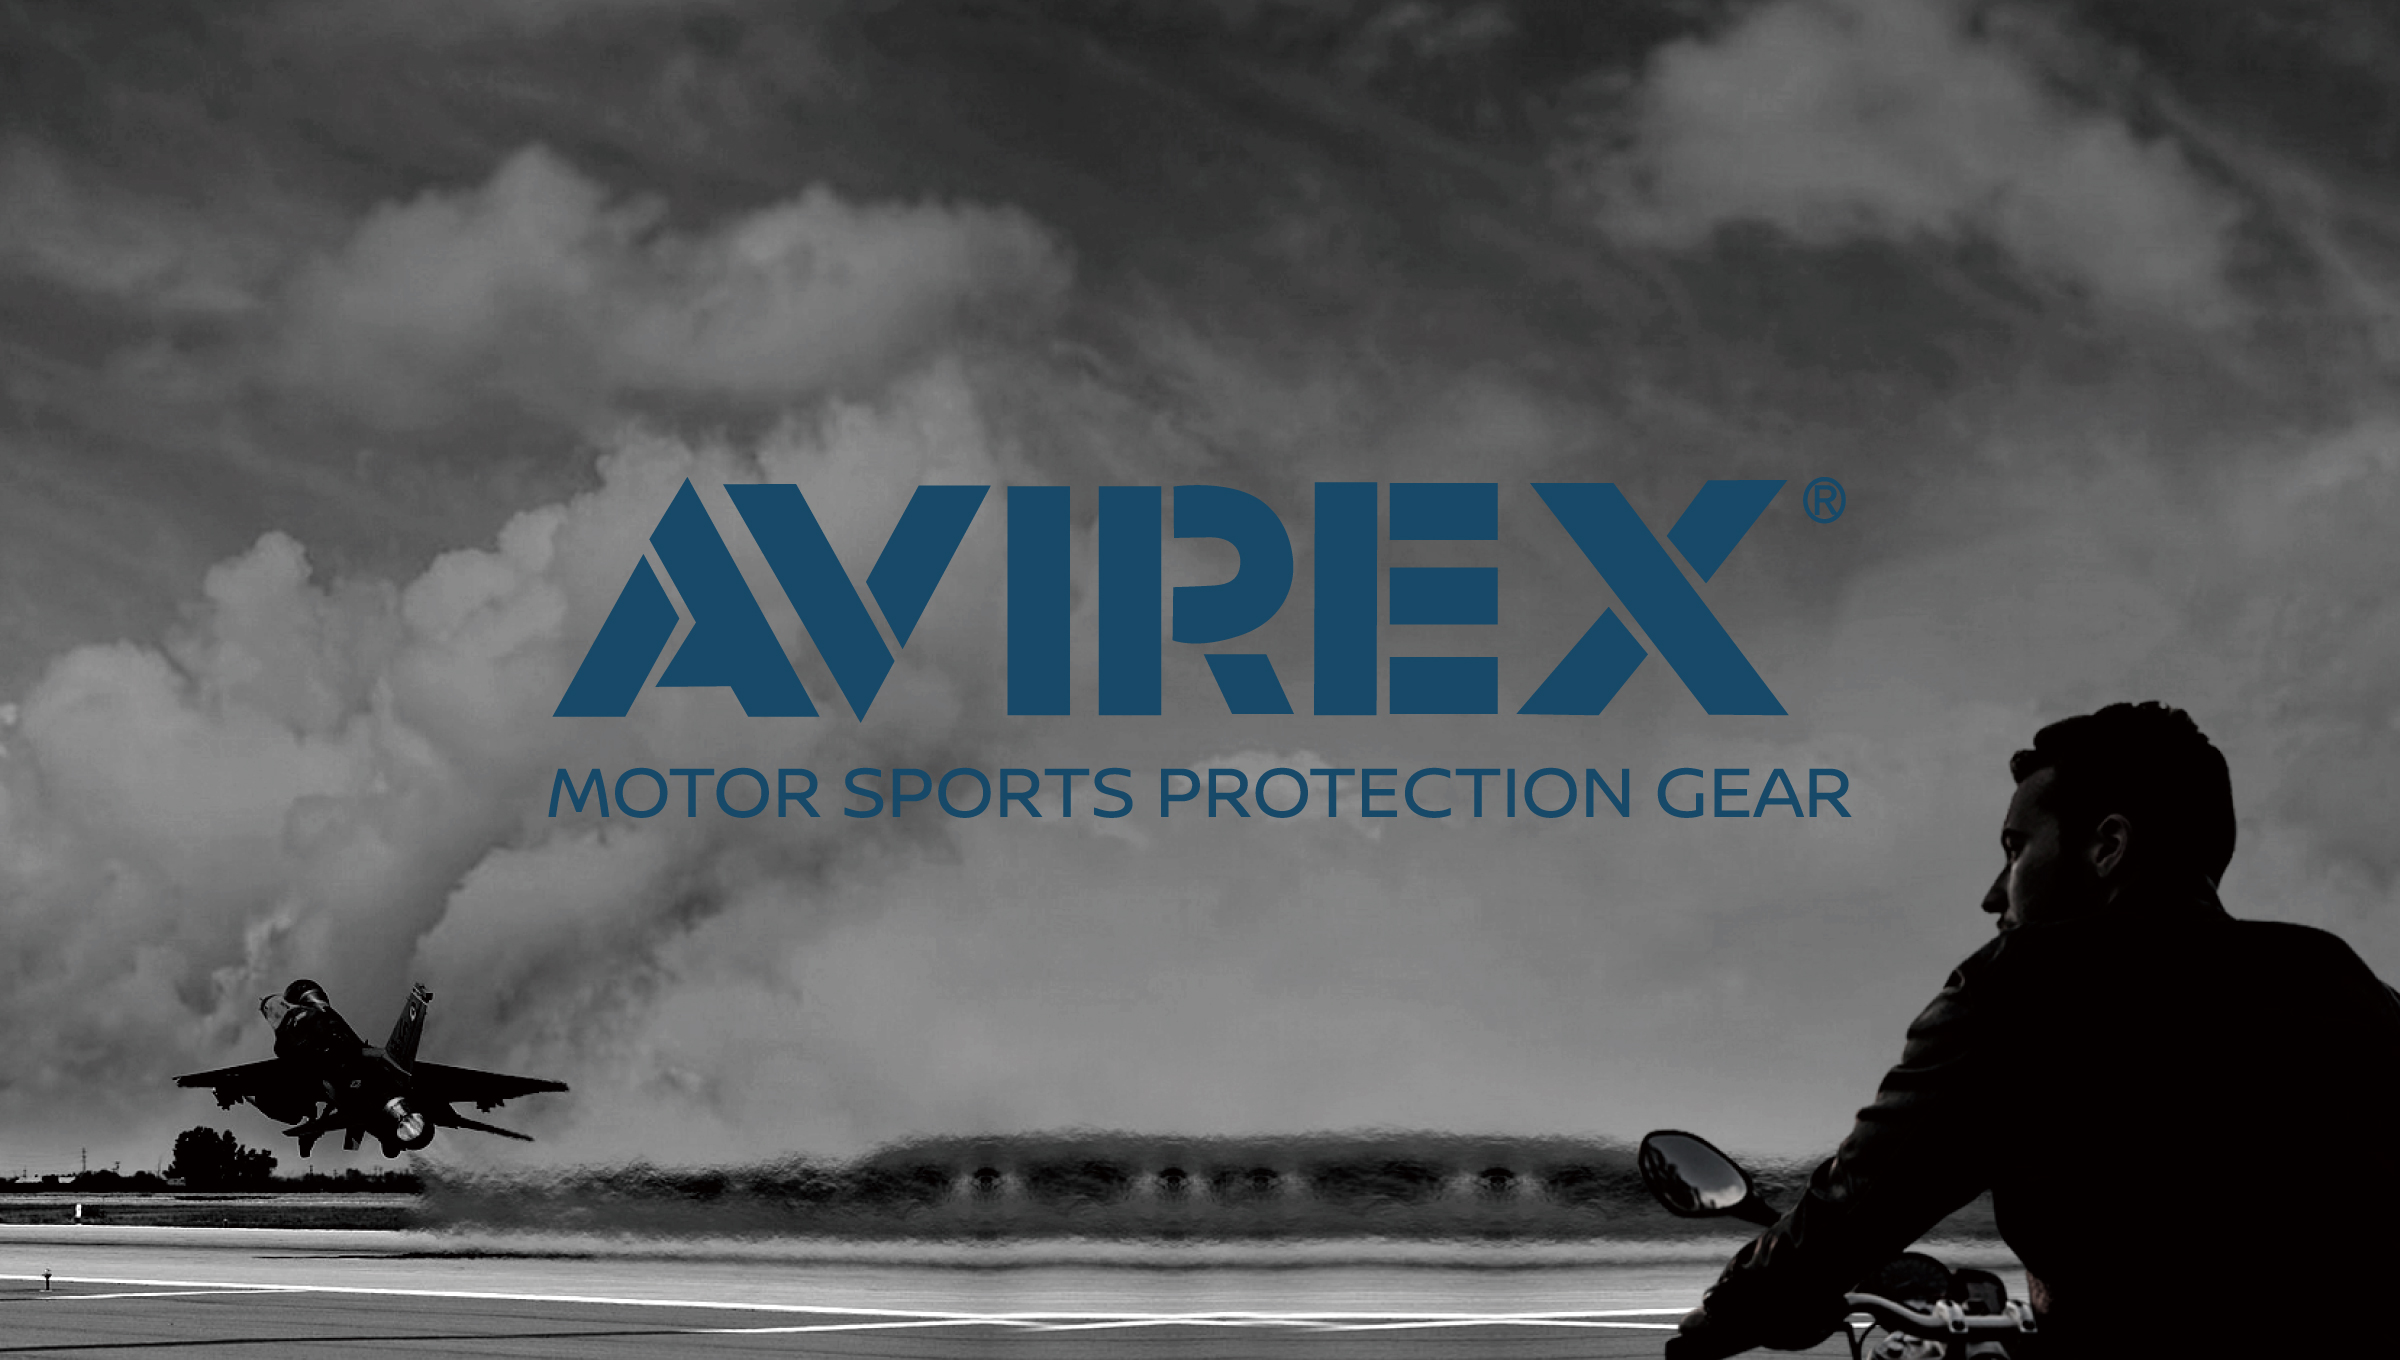 AVIREX Motor Sports Protection Gear